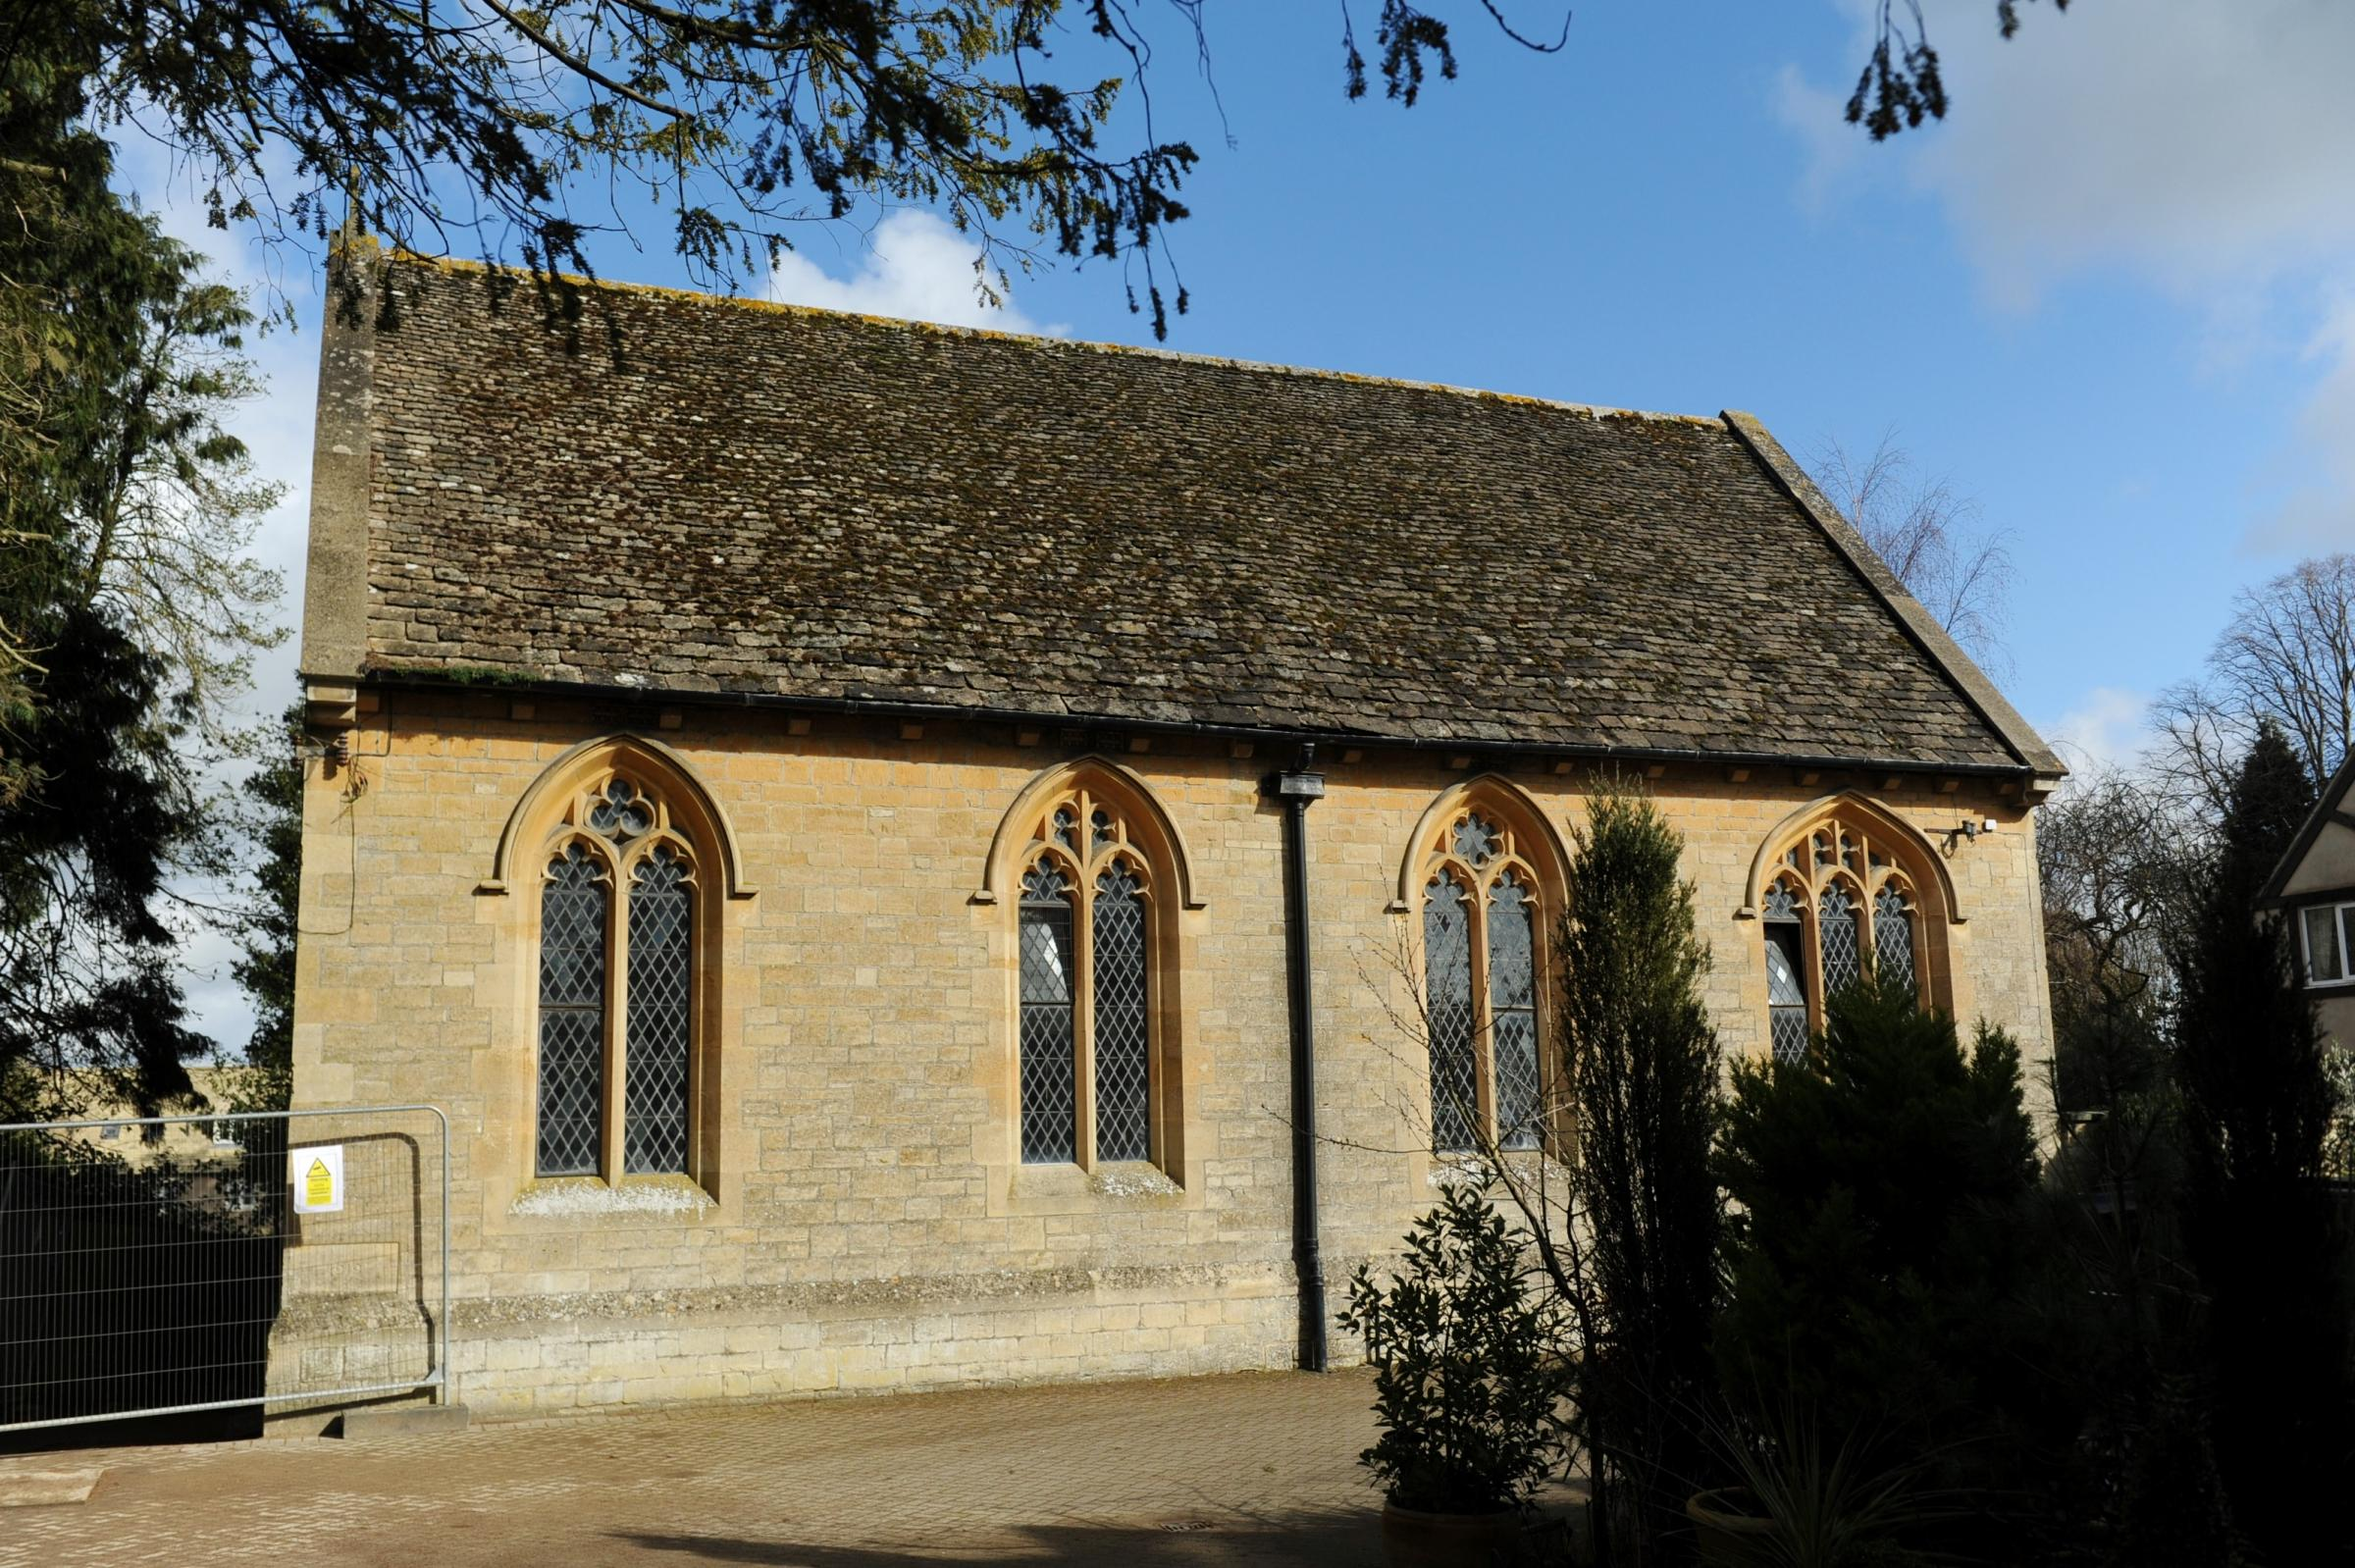 Cirencester chapel built to remember victims of First World War could be converted into housing